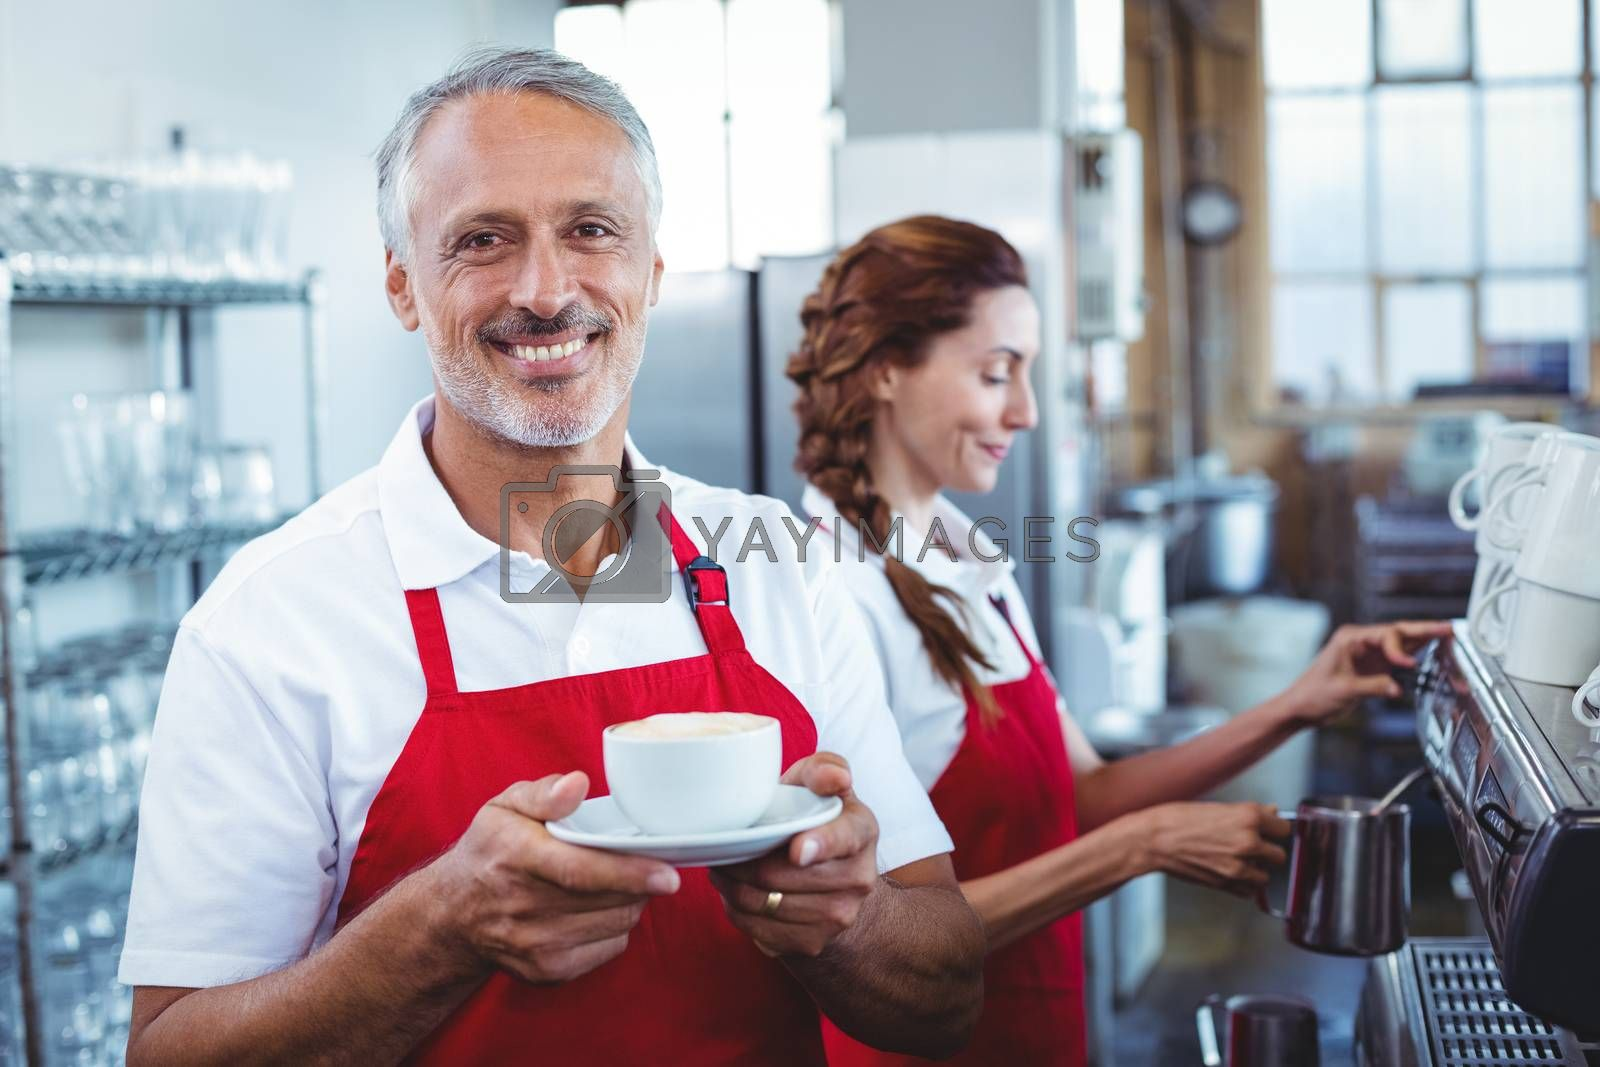 Royalty free image of Happy barista smiling at camera and holding a cup of coffee by Wavebreakmedia